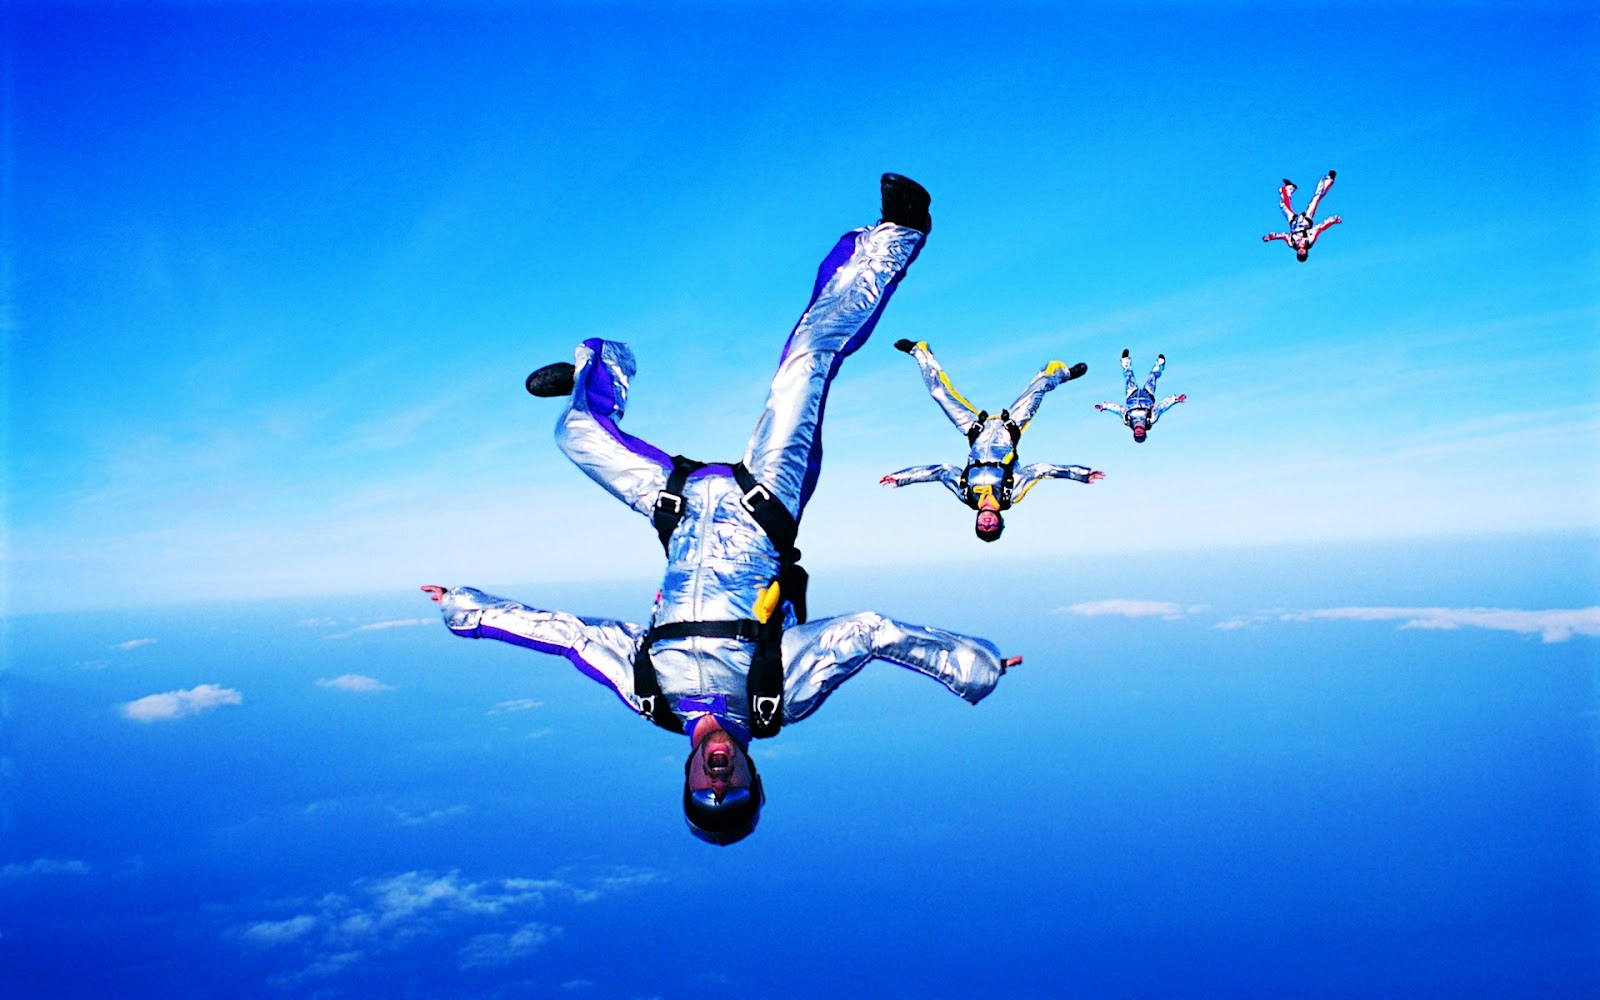 extreme sports diving sport sky extremely disciplined become wonderful fool extreem jump base bellisima why down march